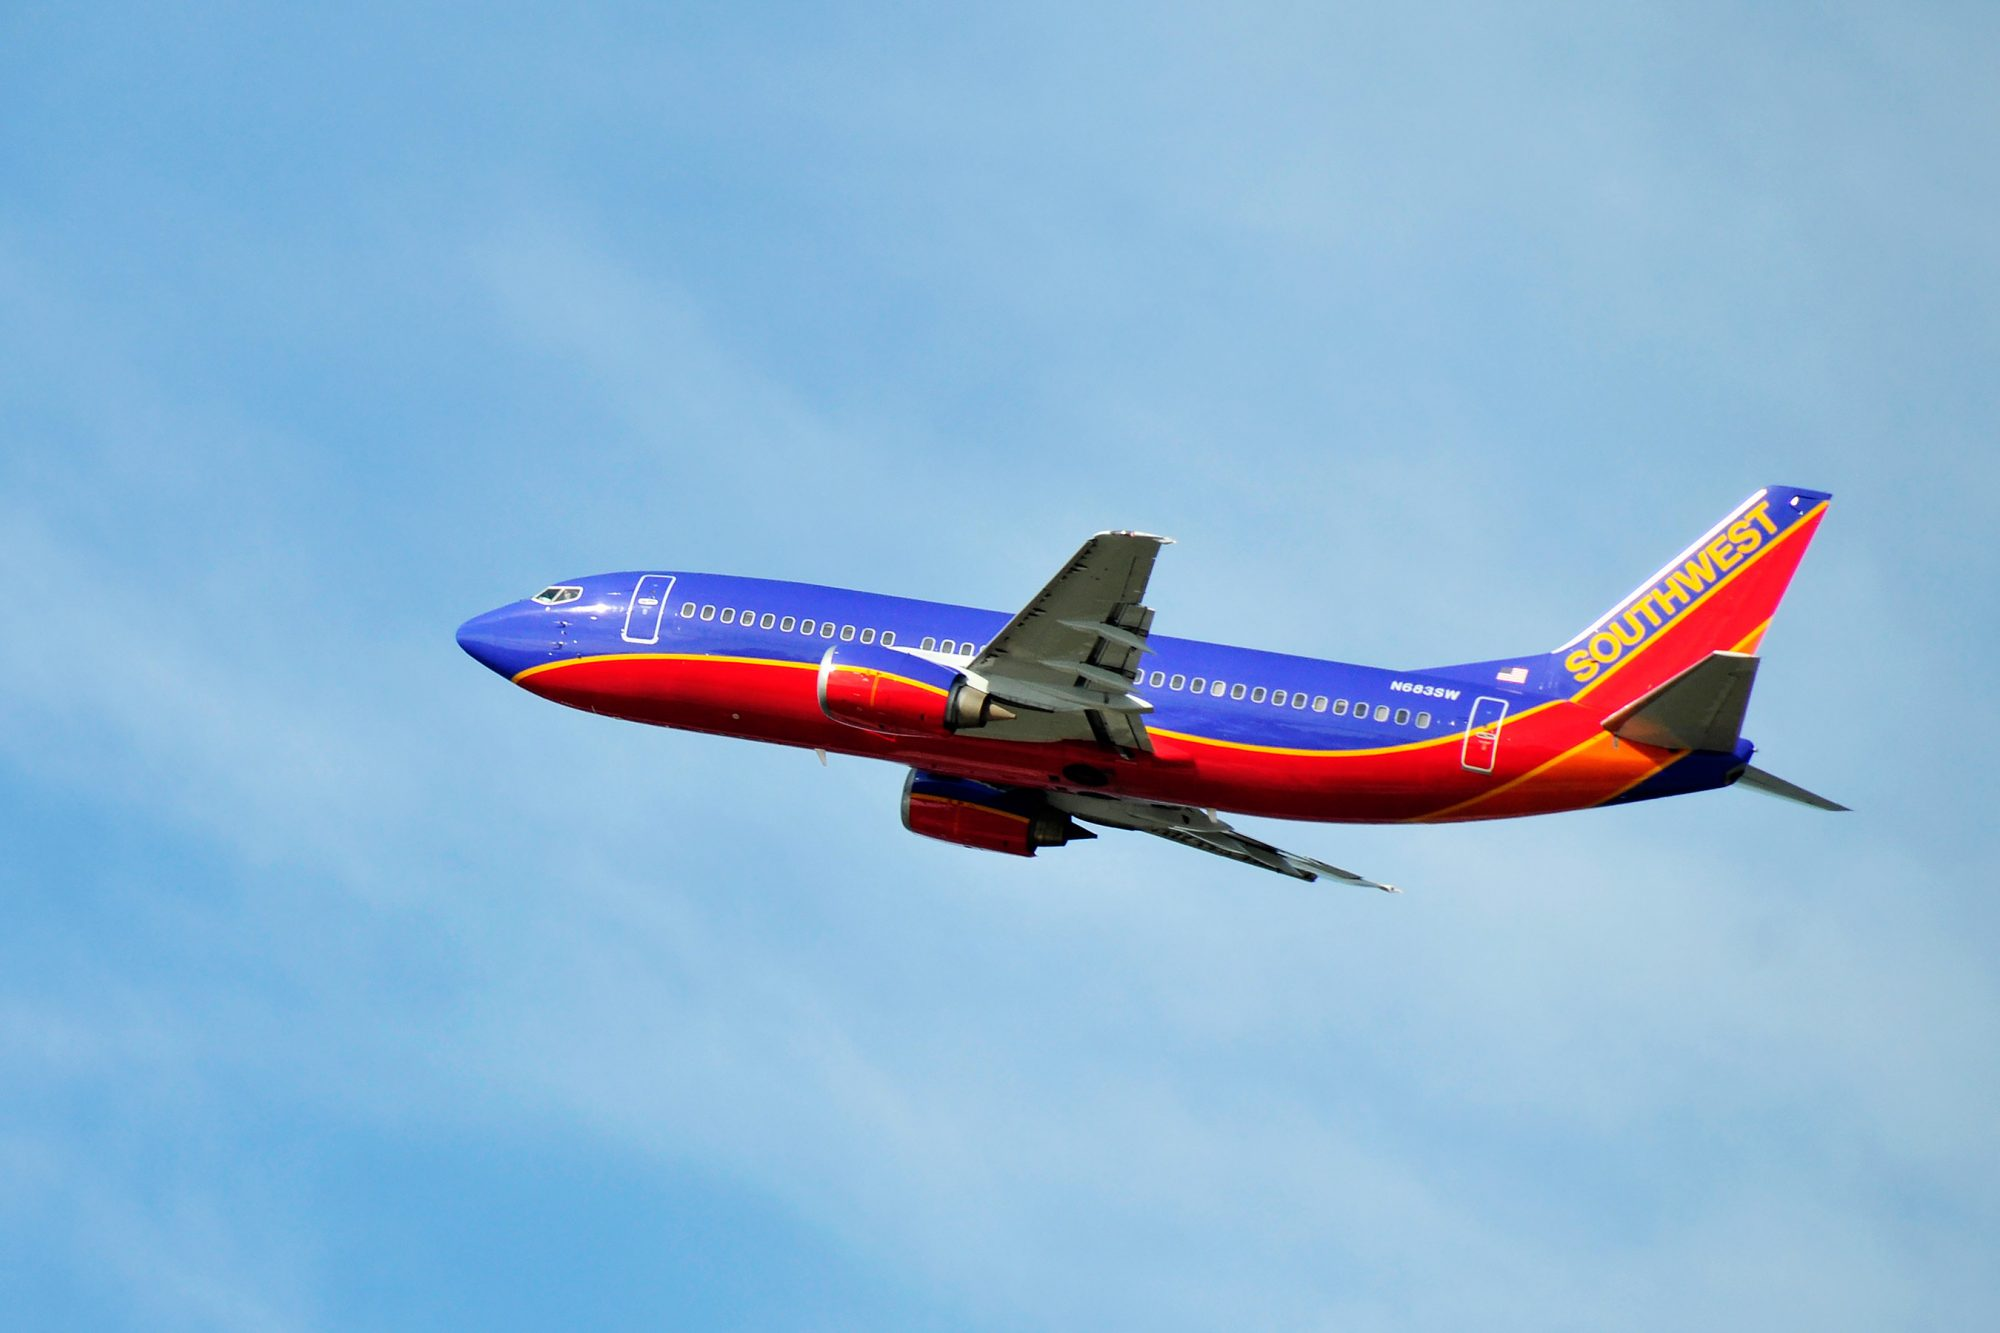 Southwest jet aircraft departing, Orlando International Airport